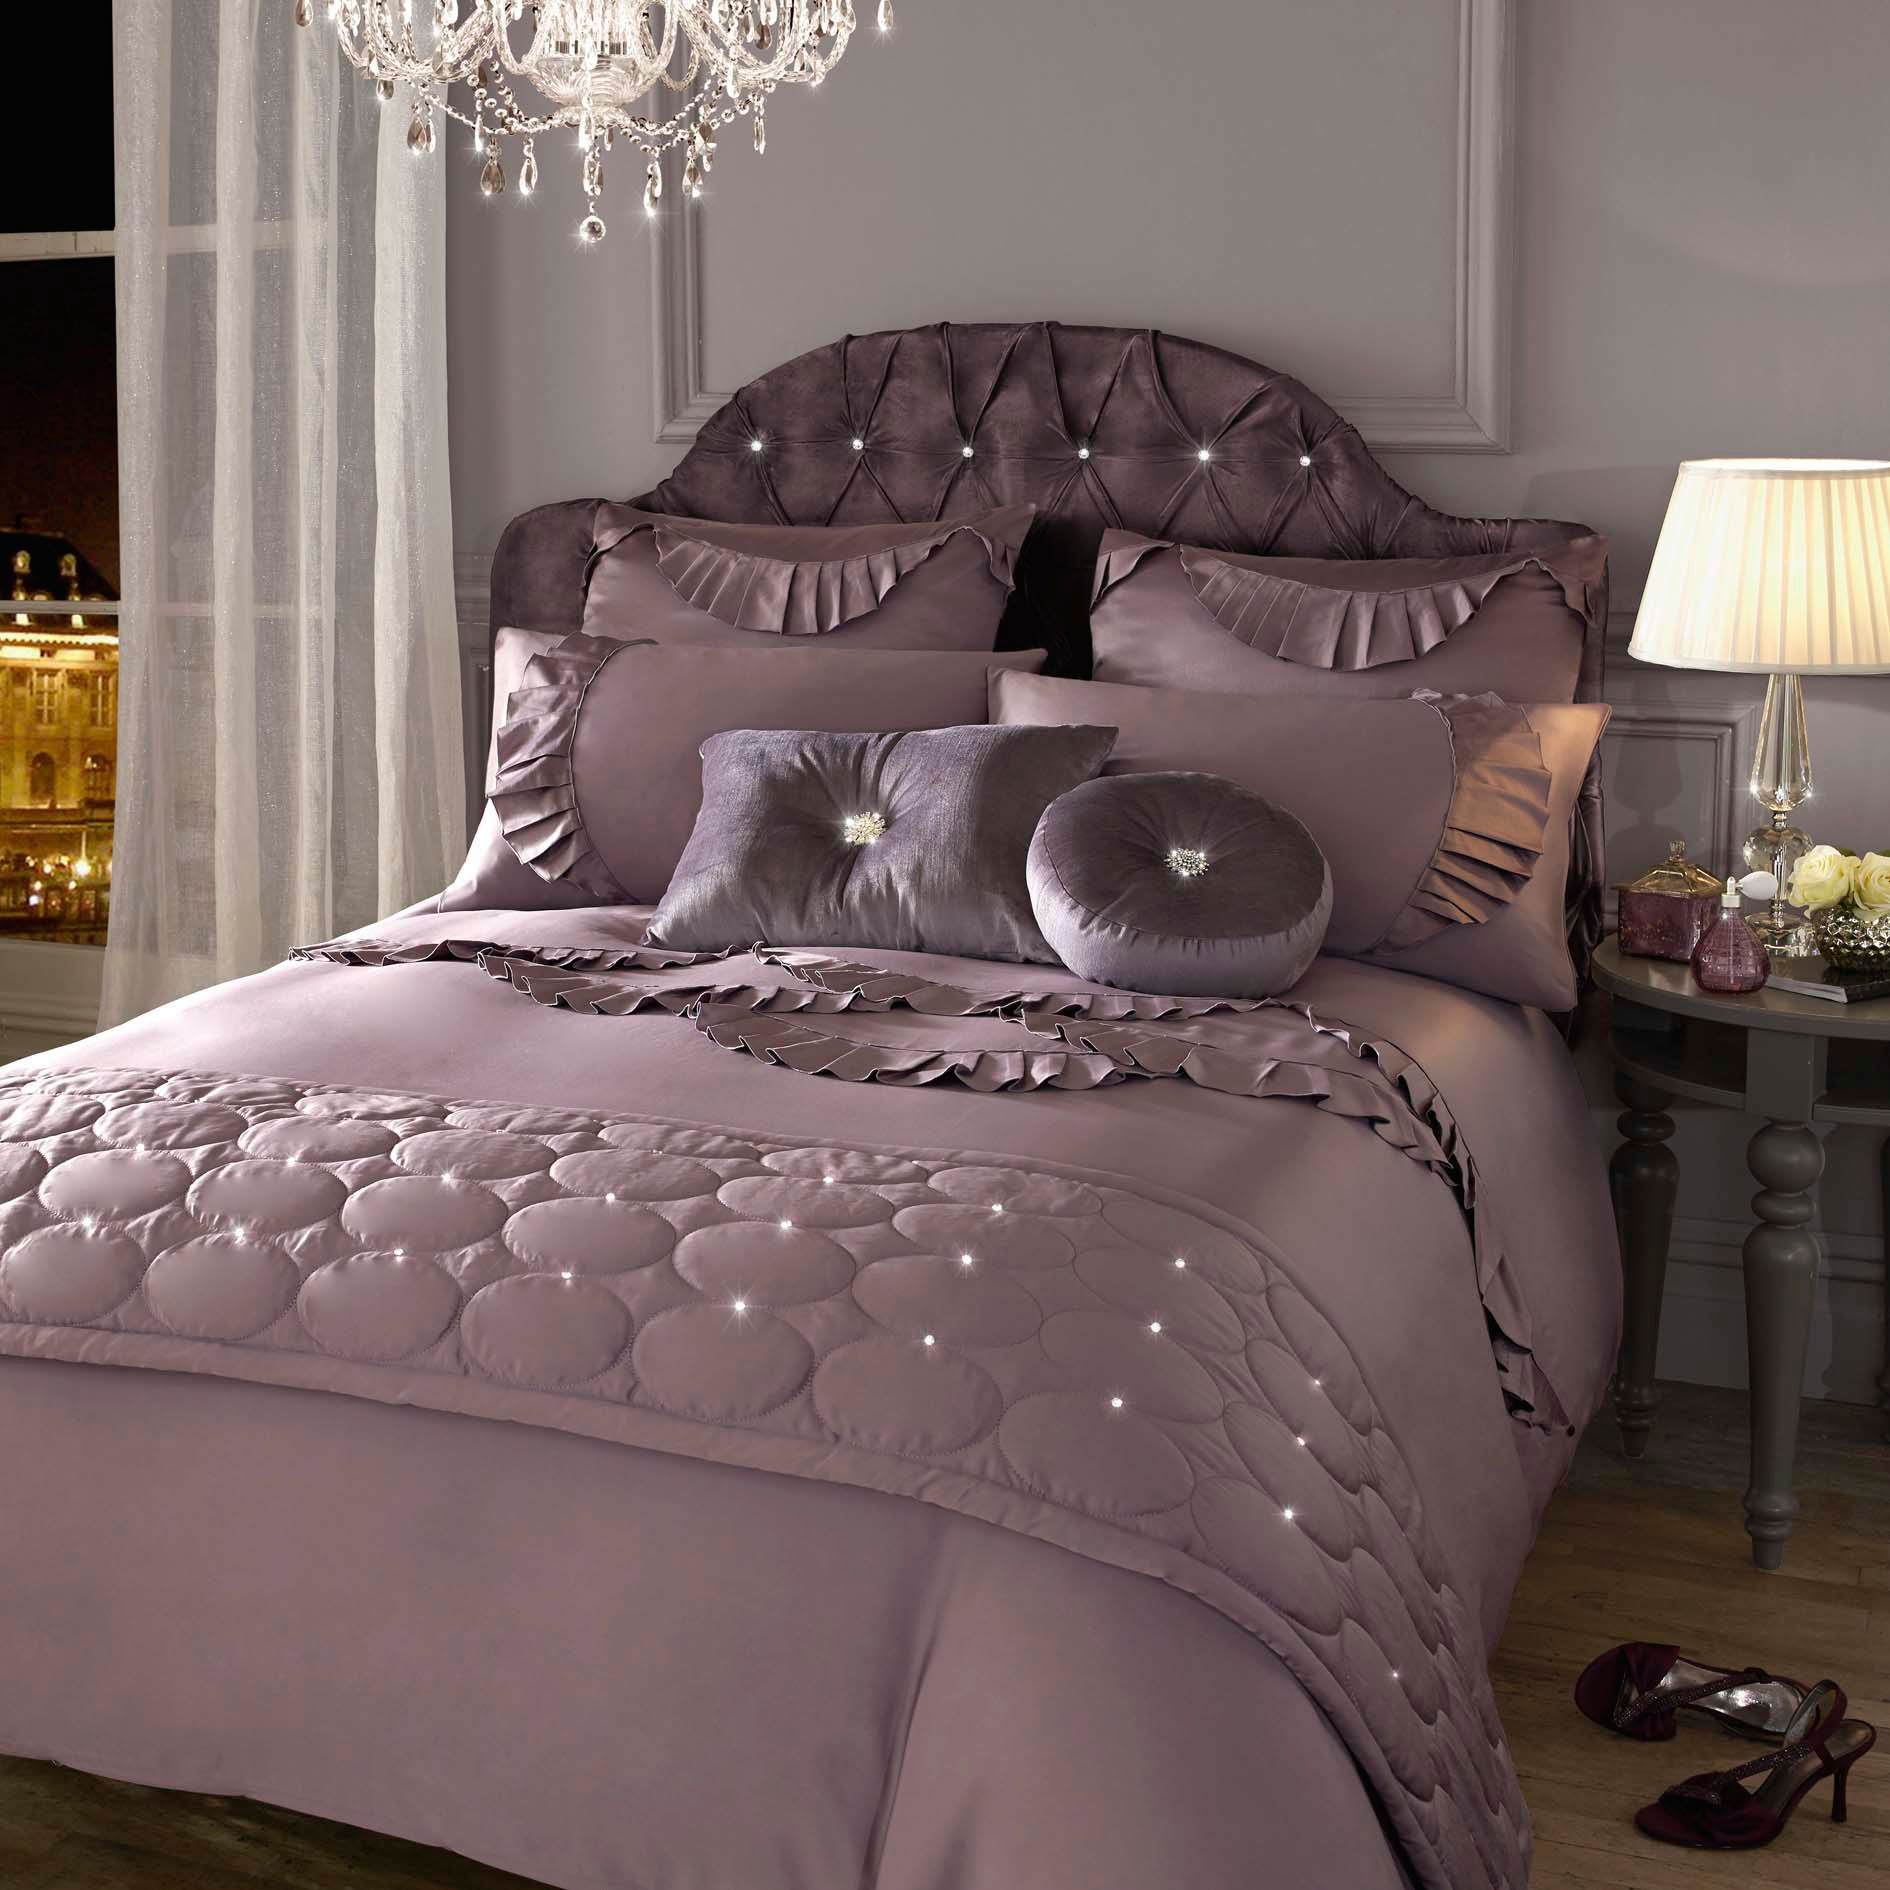 Evangeline amethyst single duvet cover